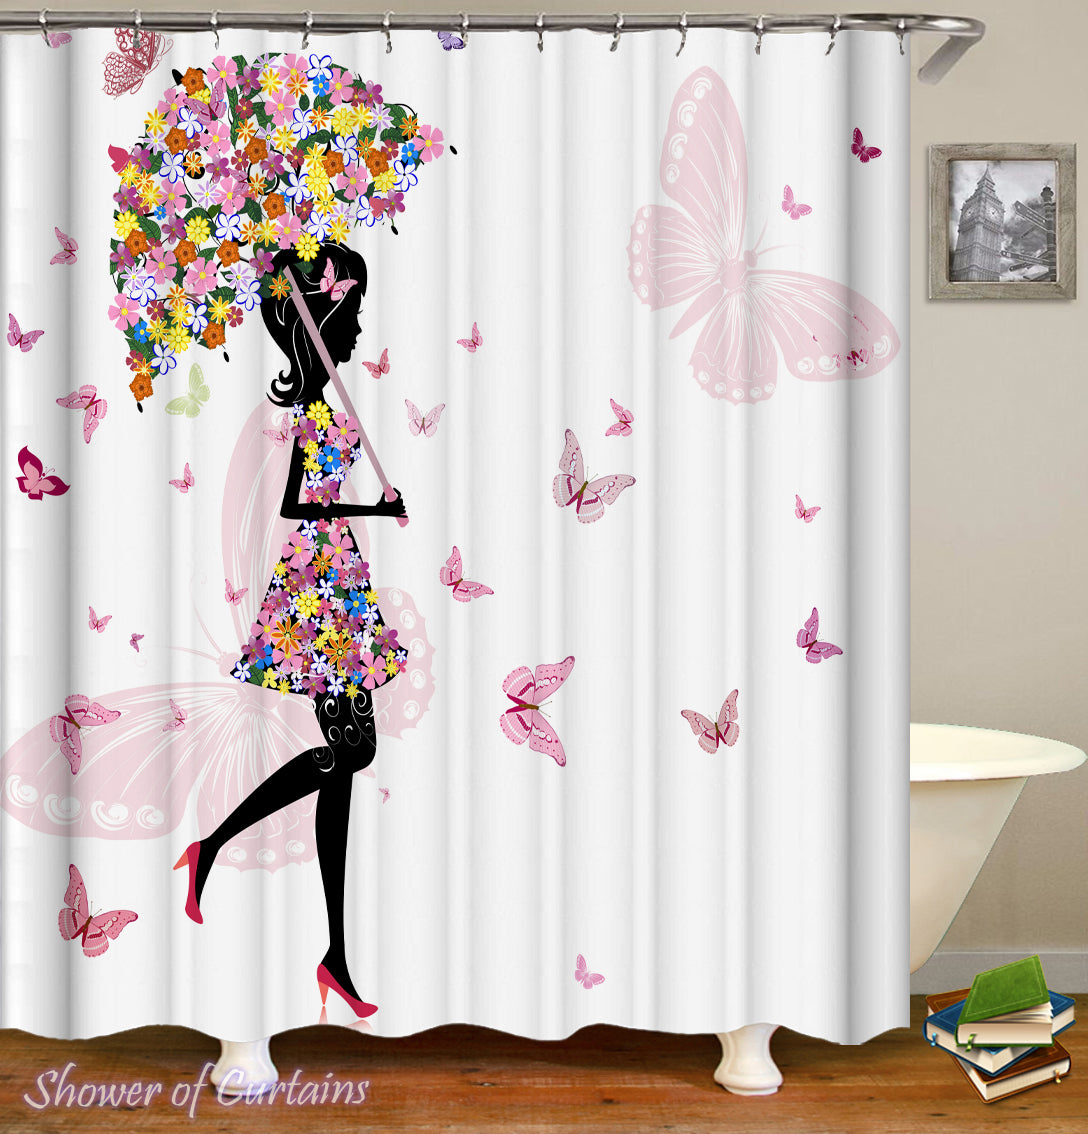 Shower Curtains | Flowery Black White Girl – Shower of Curtains